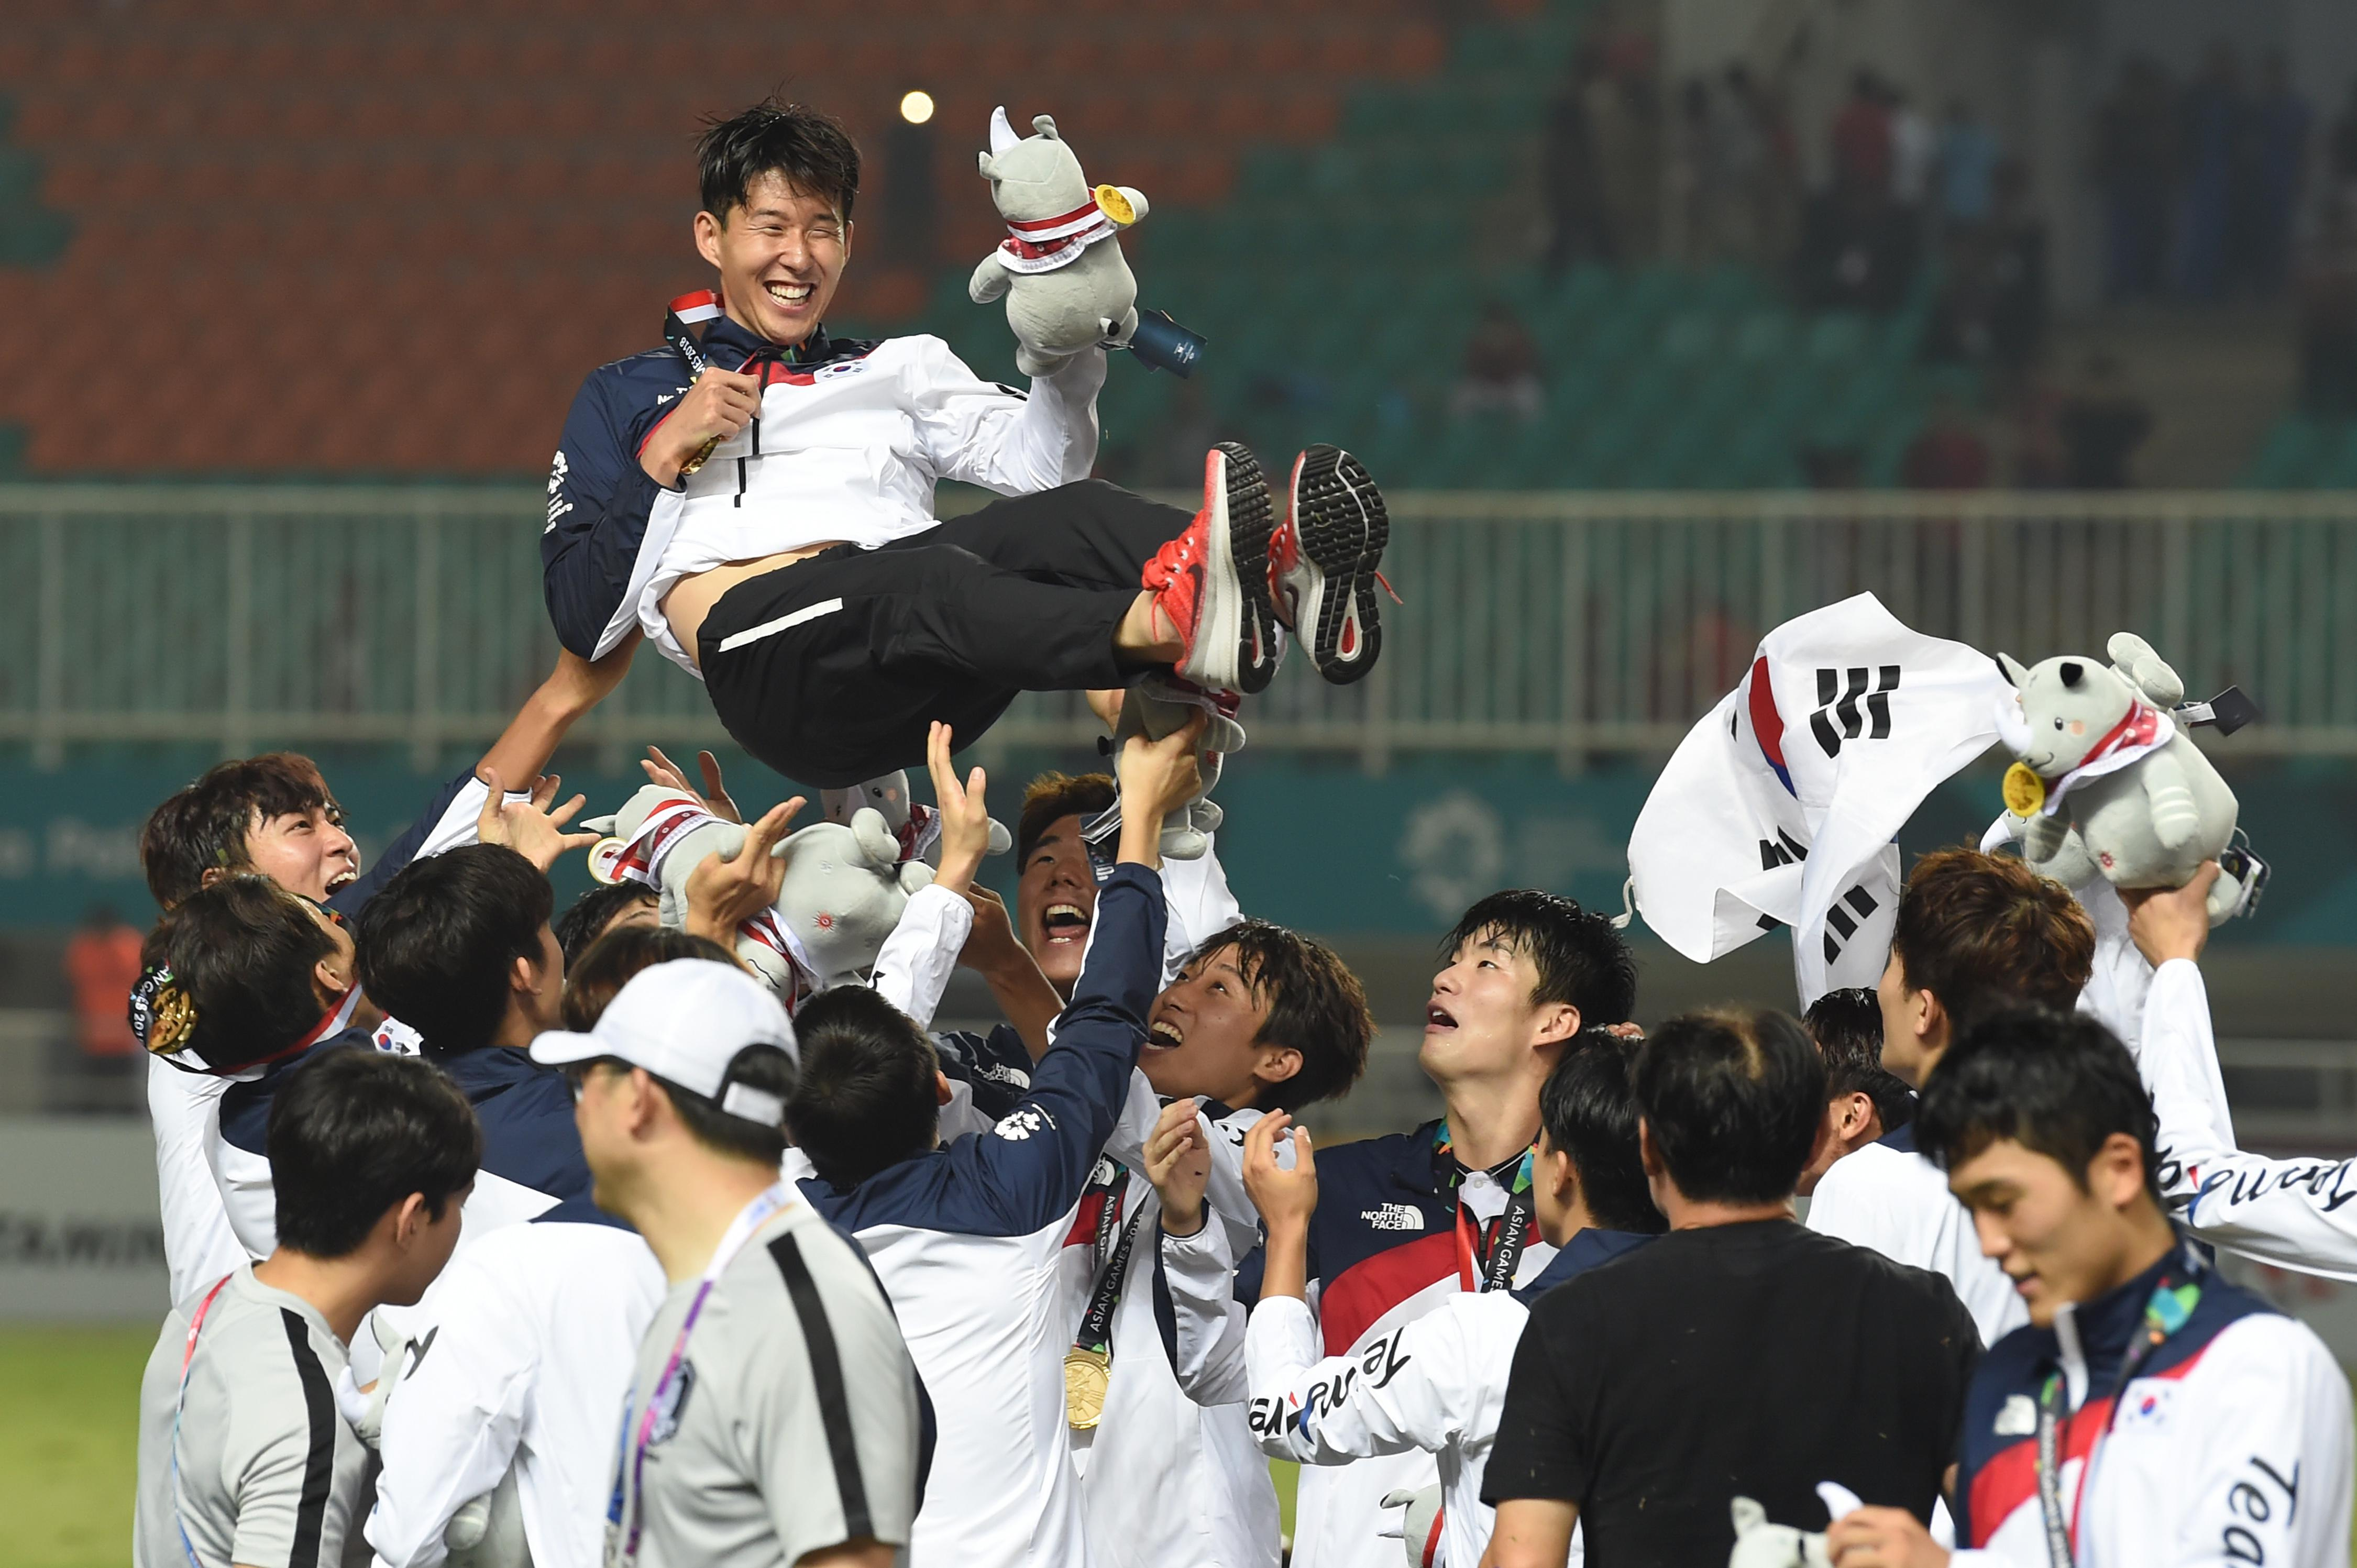 South Korea's players toss their teammate Son Heung-min in the air after the victory ceremony for the mens football competition at the 2018 Asian Games in Bogor on September 1, 2018. (Photo by Arief Bagus / AFP)        (Photo credit should read ARIEF BAGUS/AFP/Getty Images)